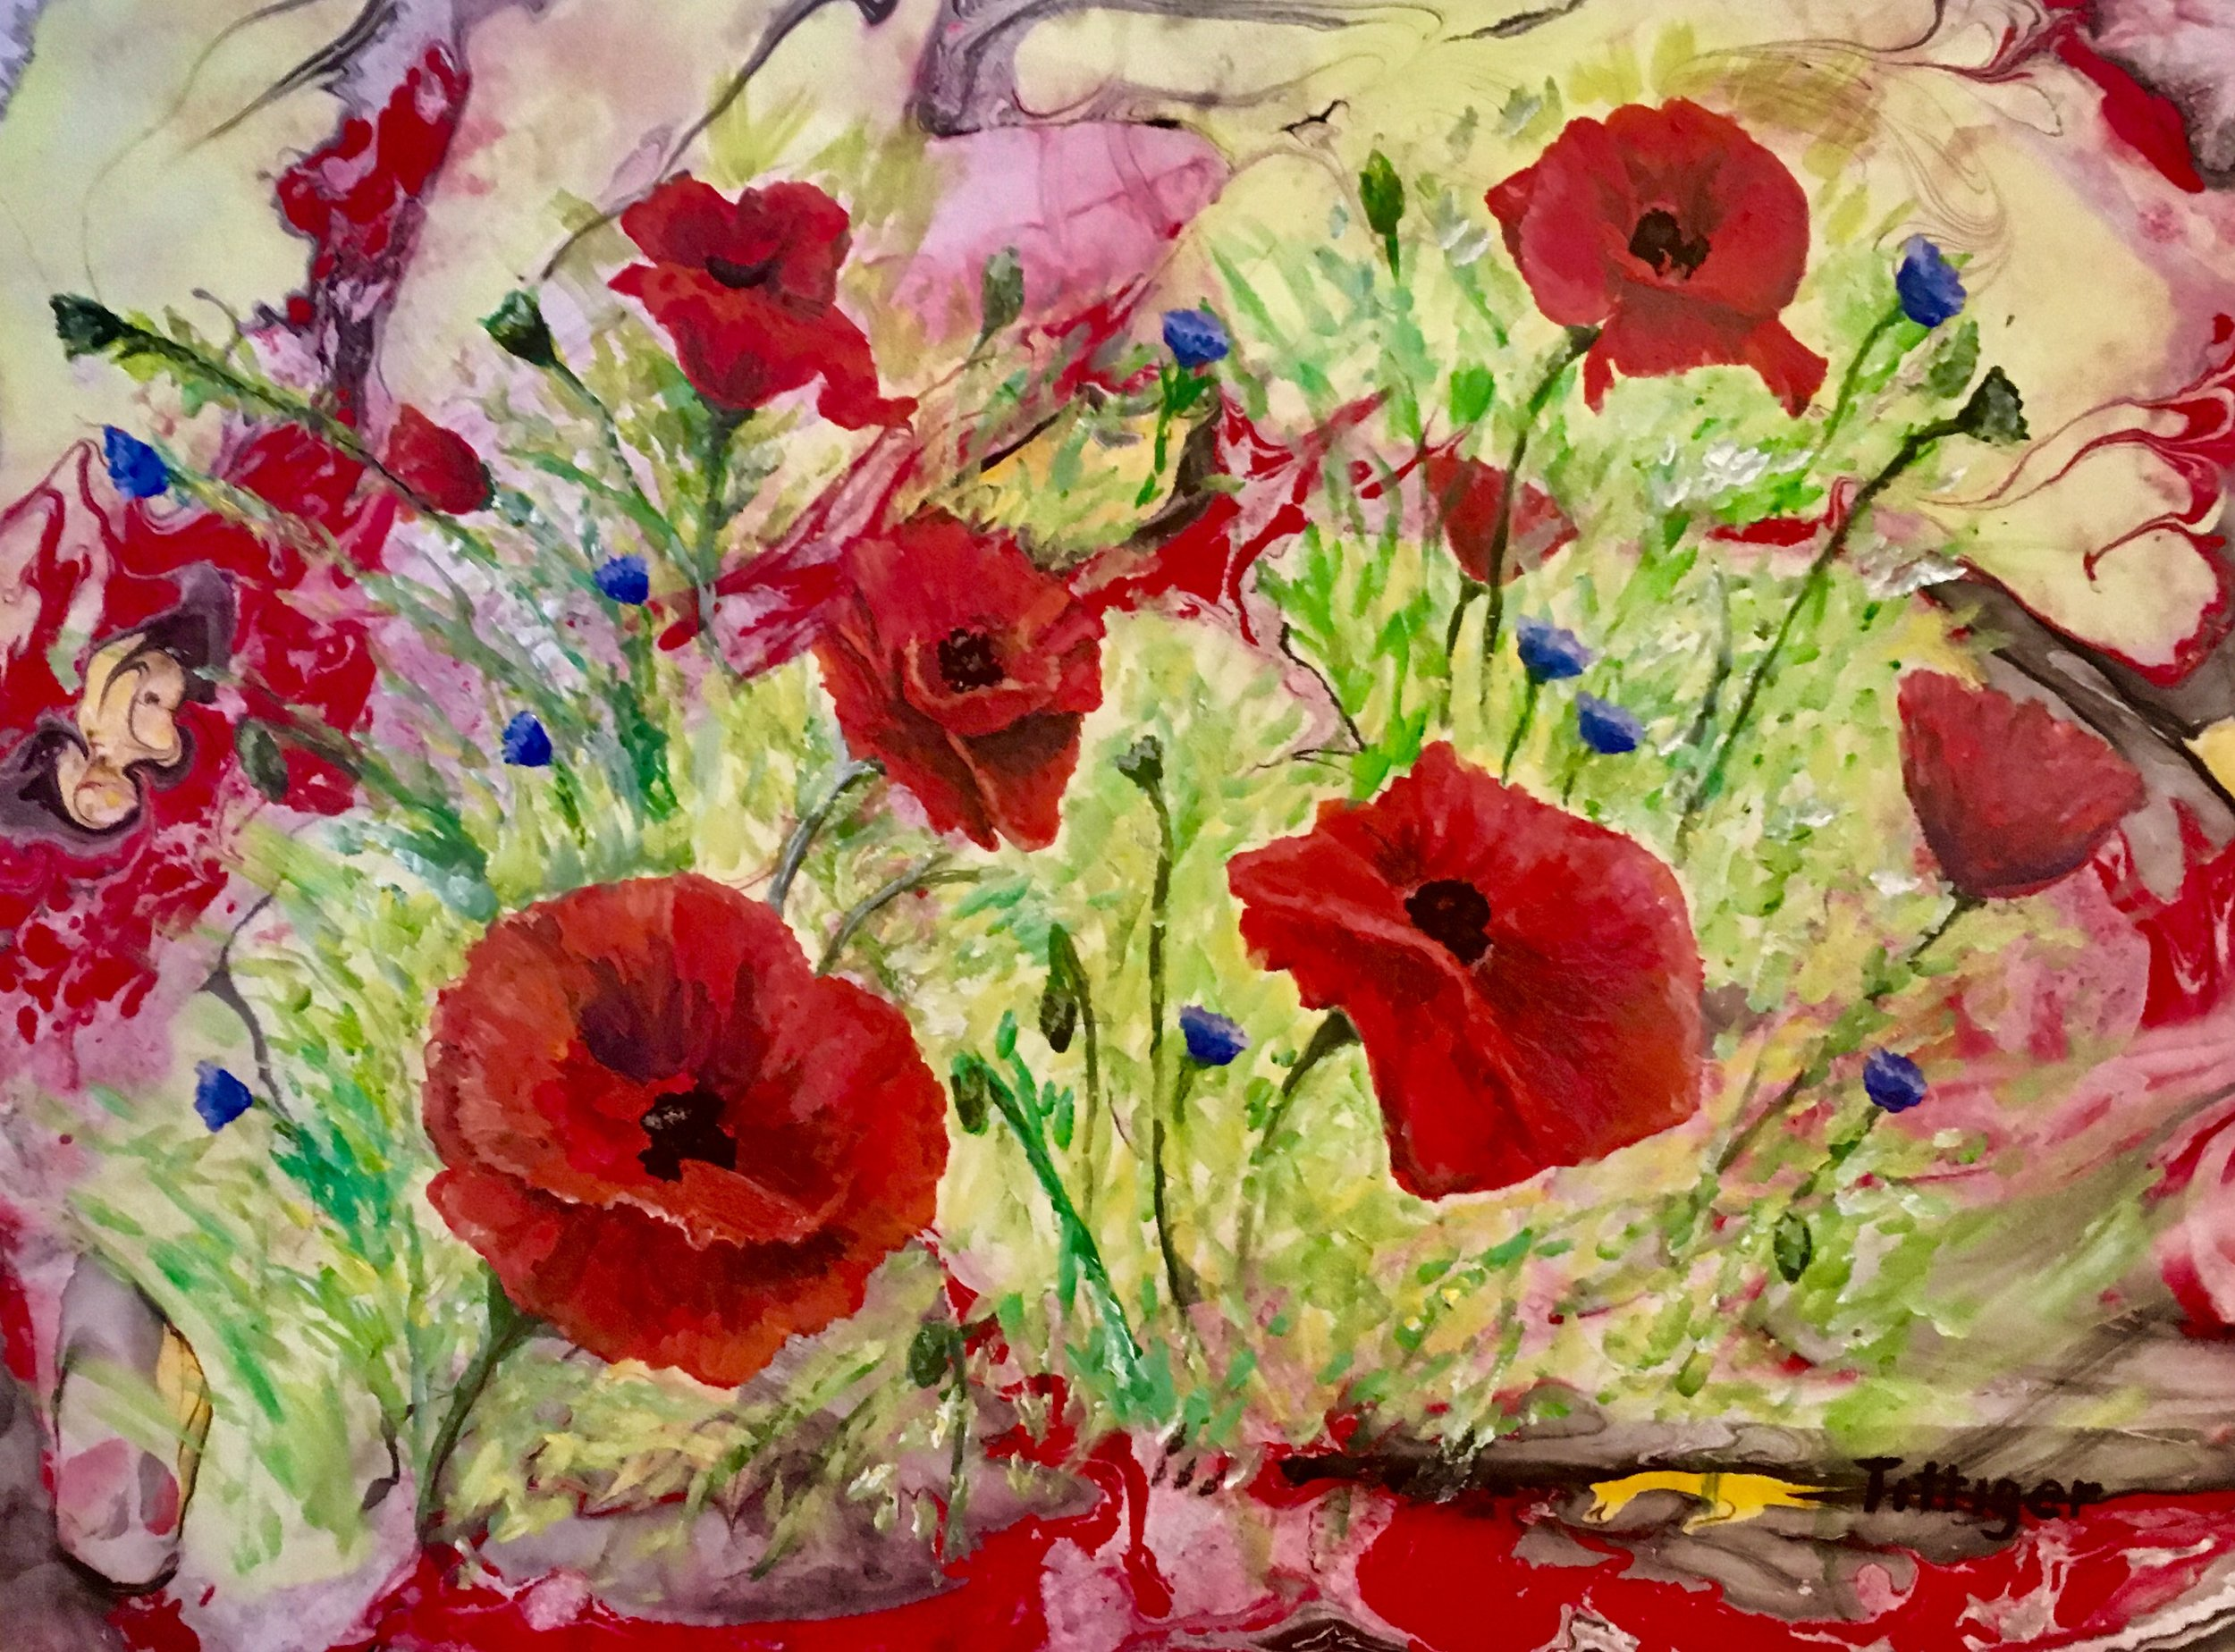 POPPY FIELD    This is an 18 x 24 acrylic marbling with a painting over top. The poppies and bachelor buttons are whimsical.  This painting will be at the Northland Public Library, Pittsburgh, PA from 6/1/19 - 8/26/19